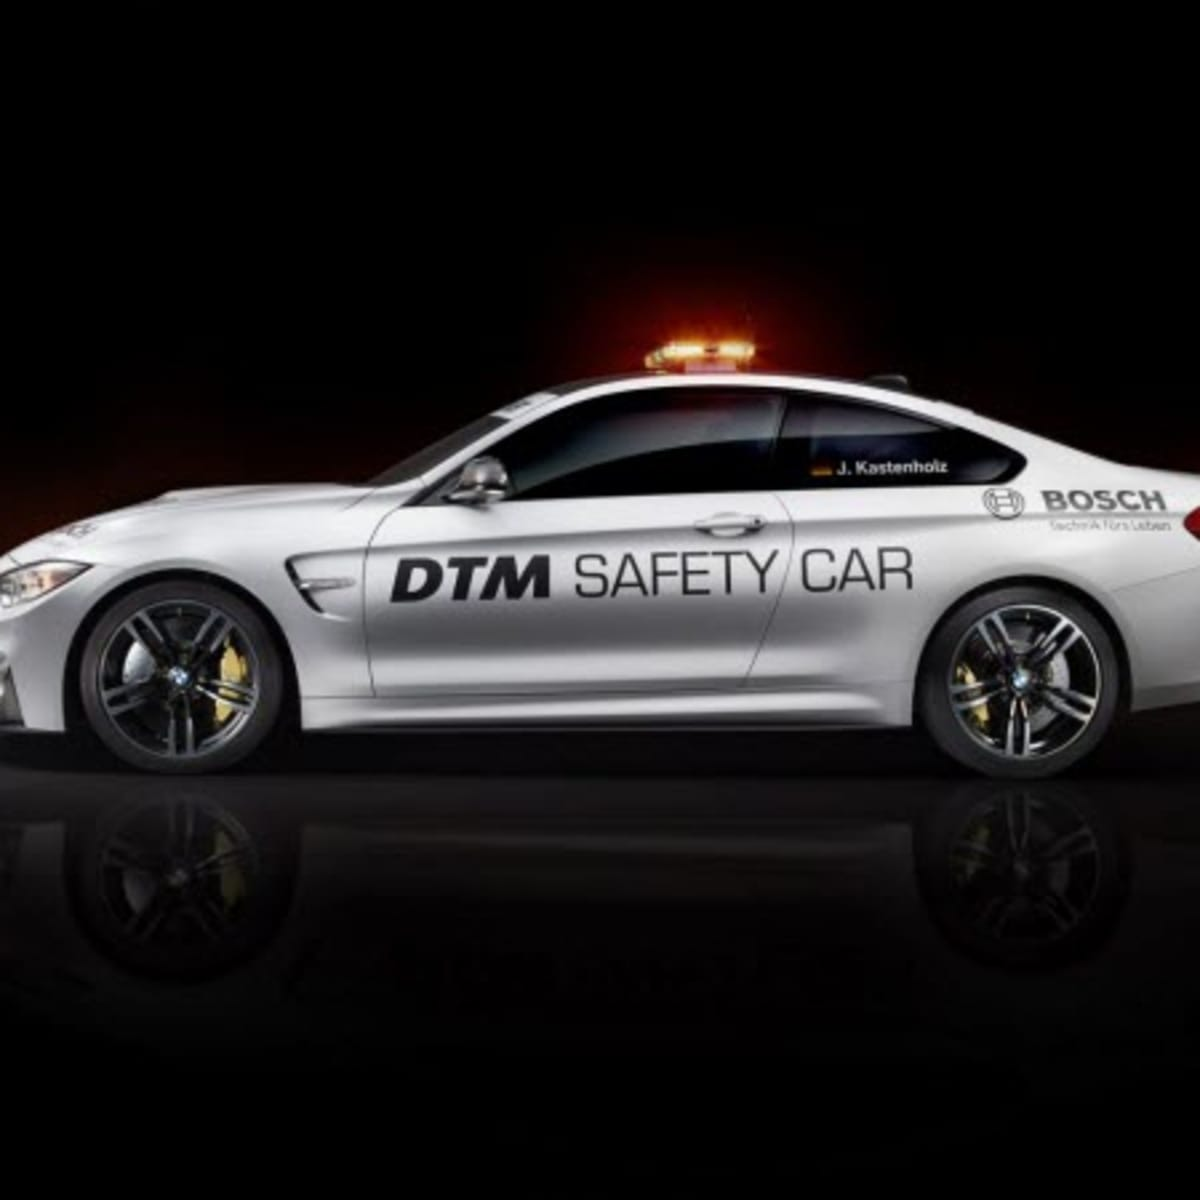 2014 Bmw M4 Coupe Dtm Safety Car Freshness Mag